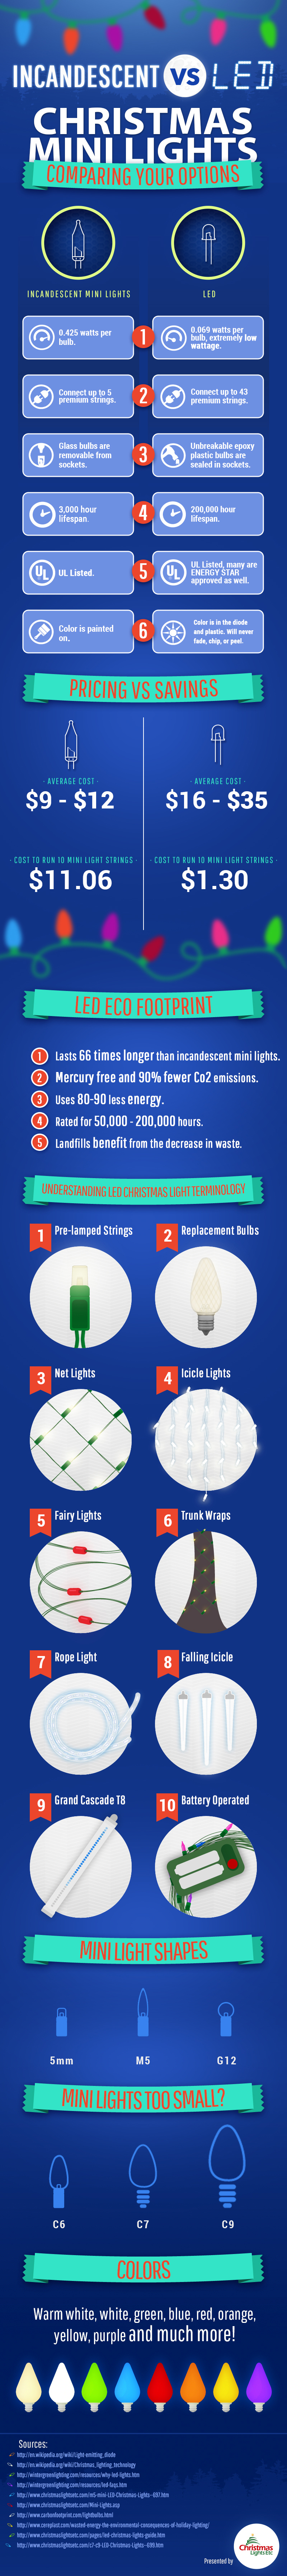 Christmas Lighting – LED VS. Incandescent